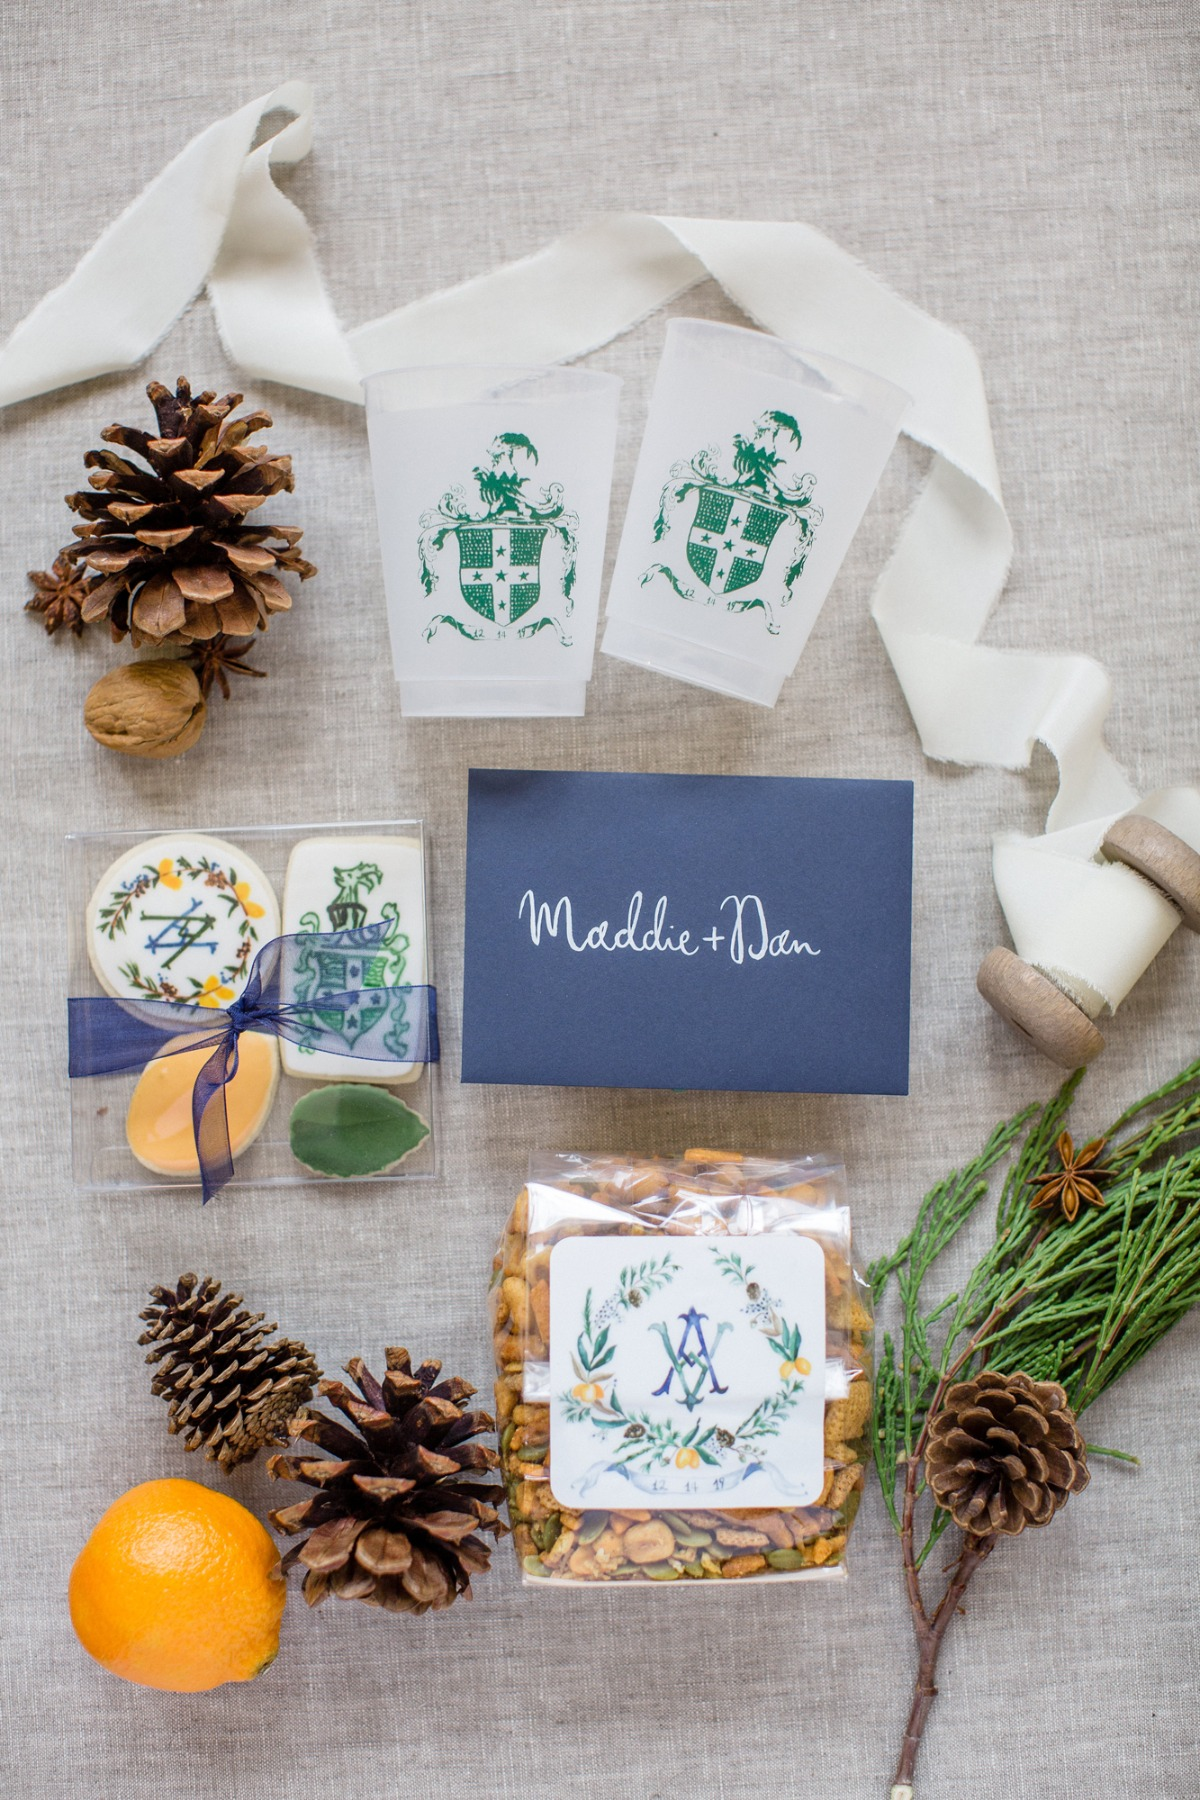 A White Christmas 1950s Holiday Themed Winter Wedding in Vermont